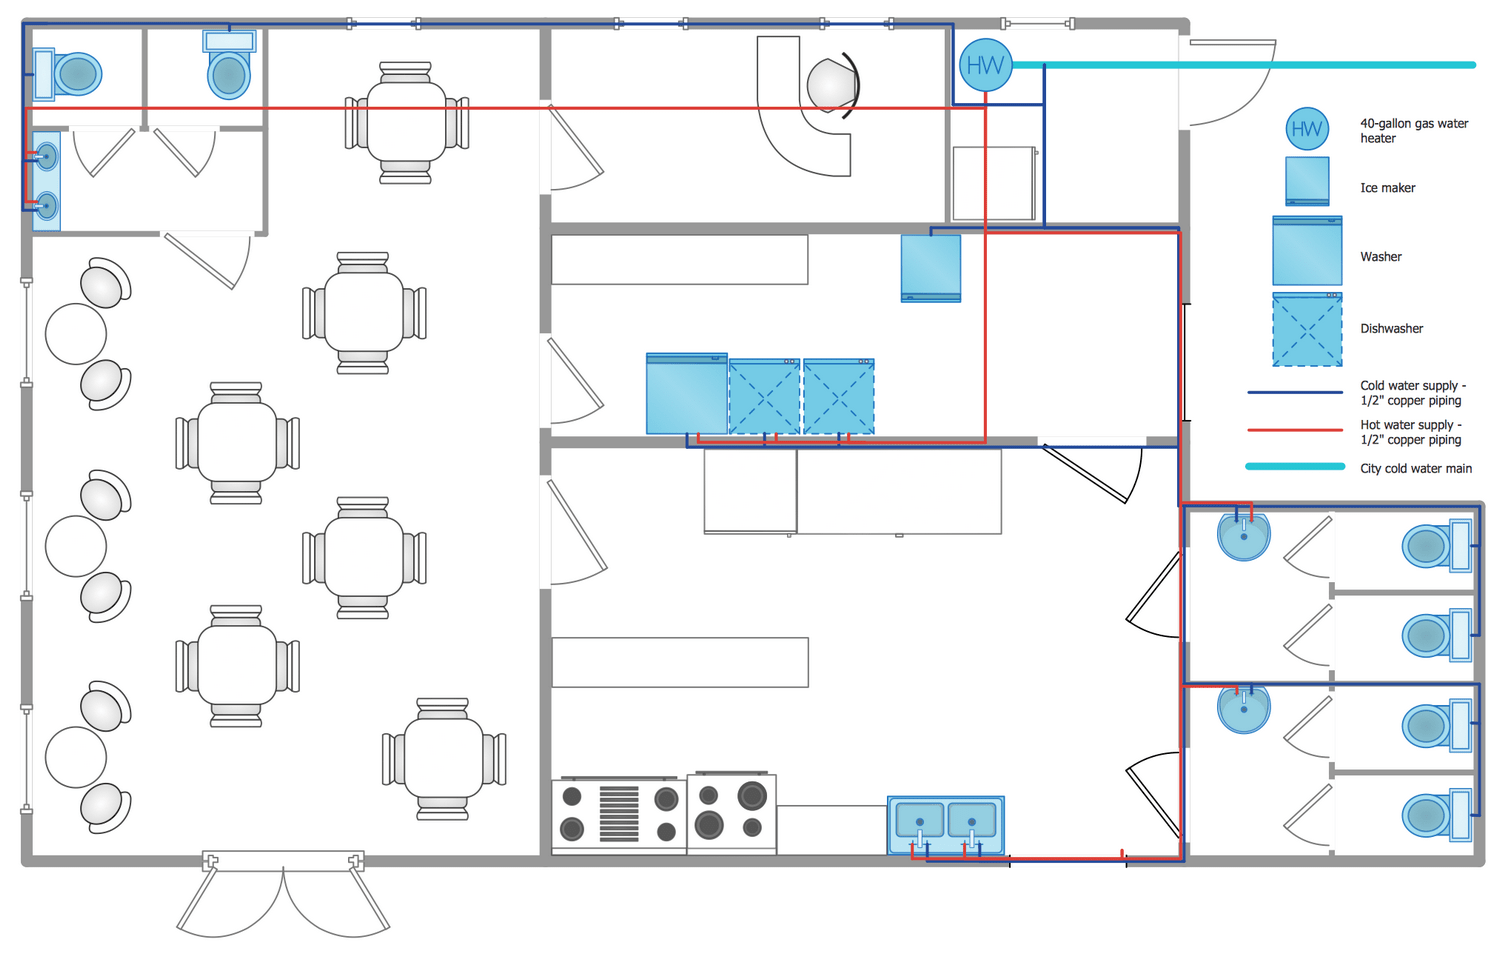 Plumbing And Piping Plans Solution